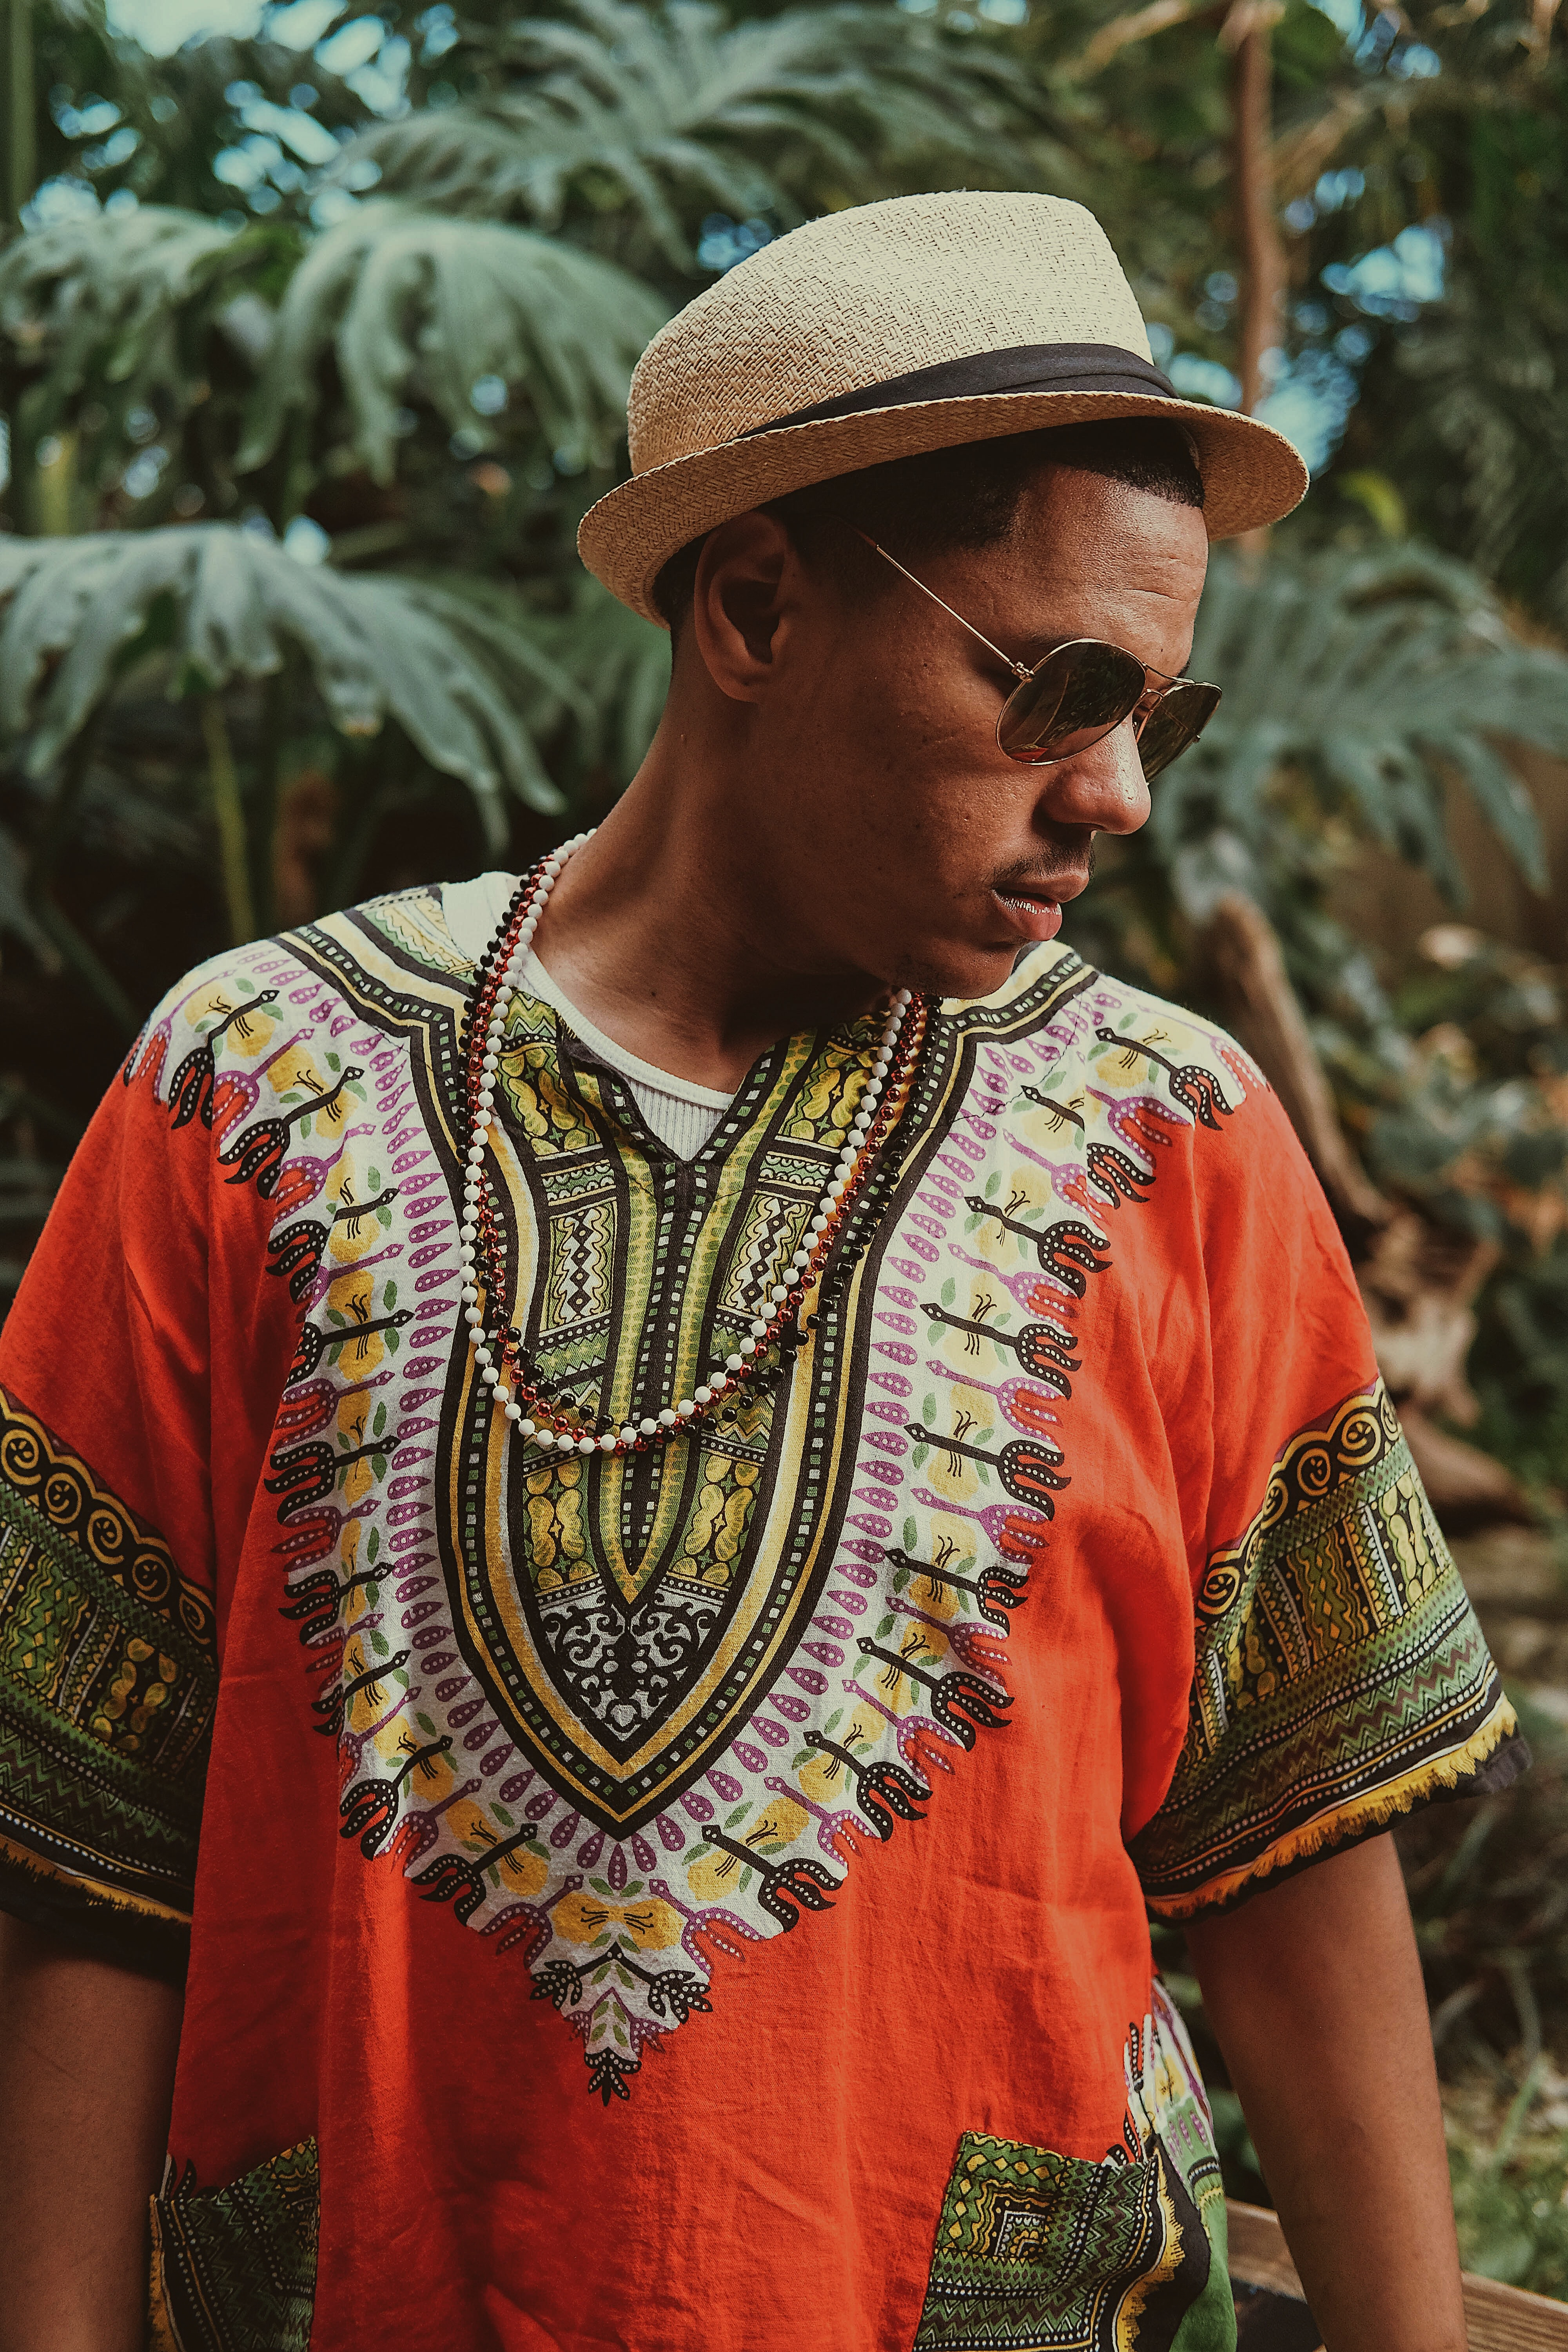 A man in a colorful dashiki, sunglasses, and straw hat looks to the side in Tulsa